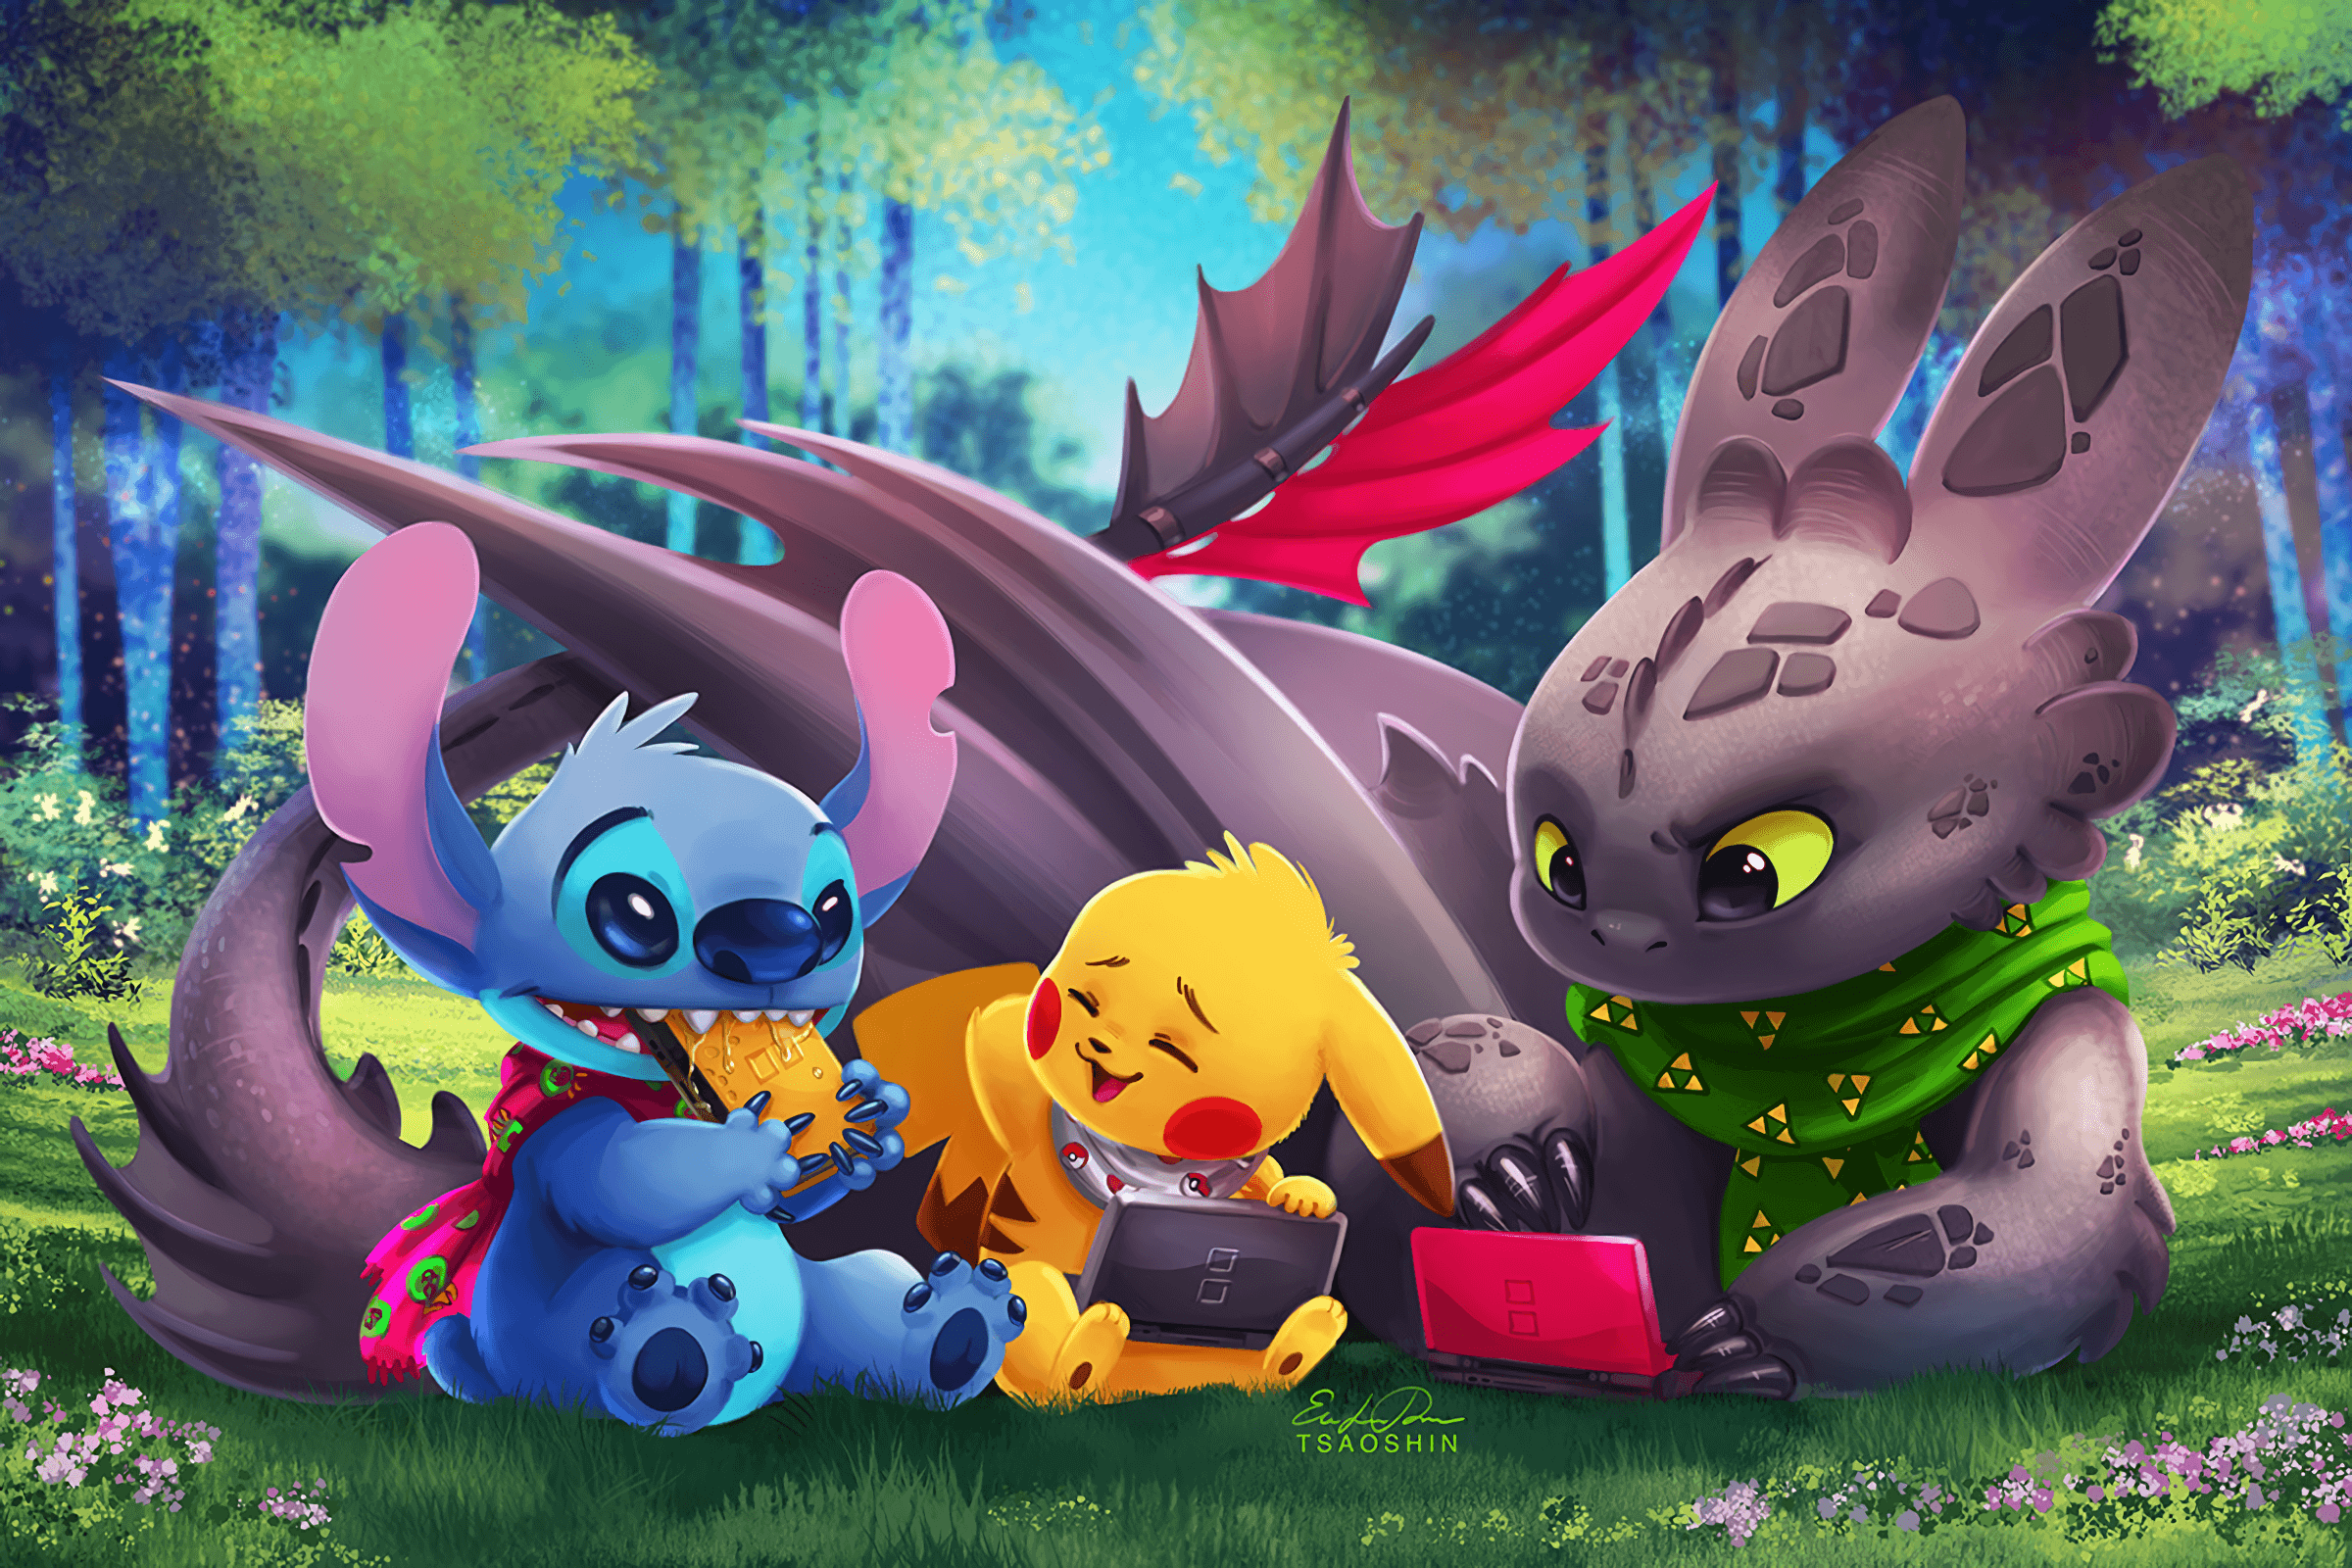 Toothless And Pikachu Wallpapers.